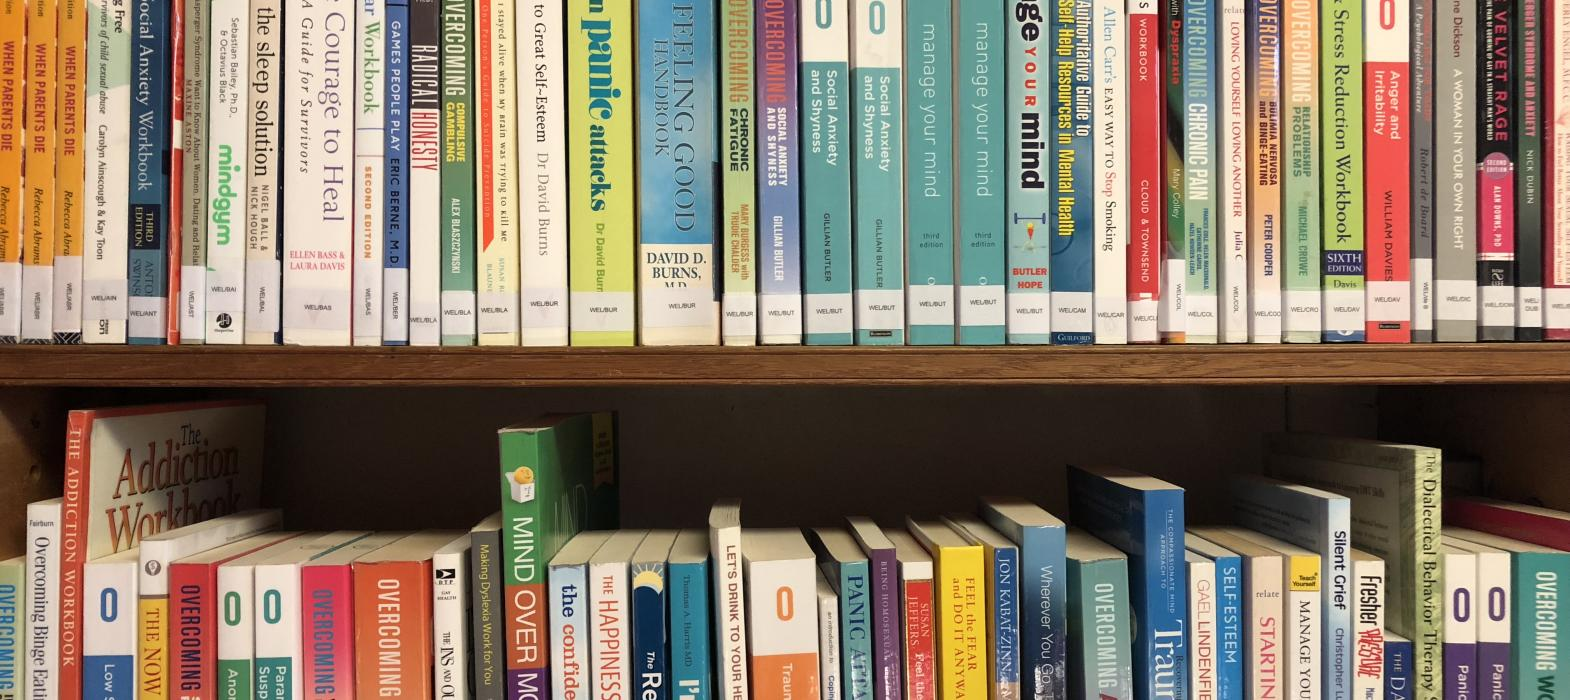 Student Welfare Books, Student Welfare and Study Skills Collection, New College Library, Oxford